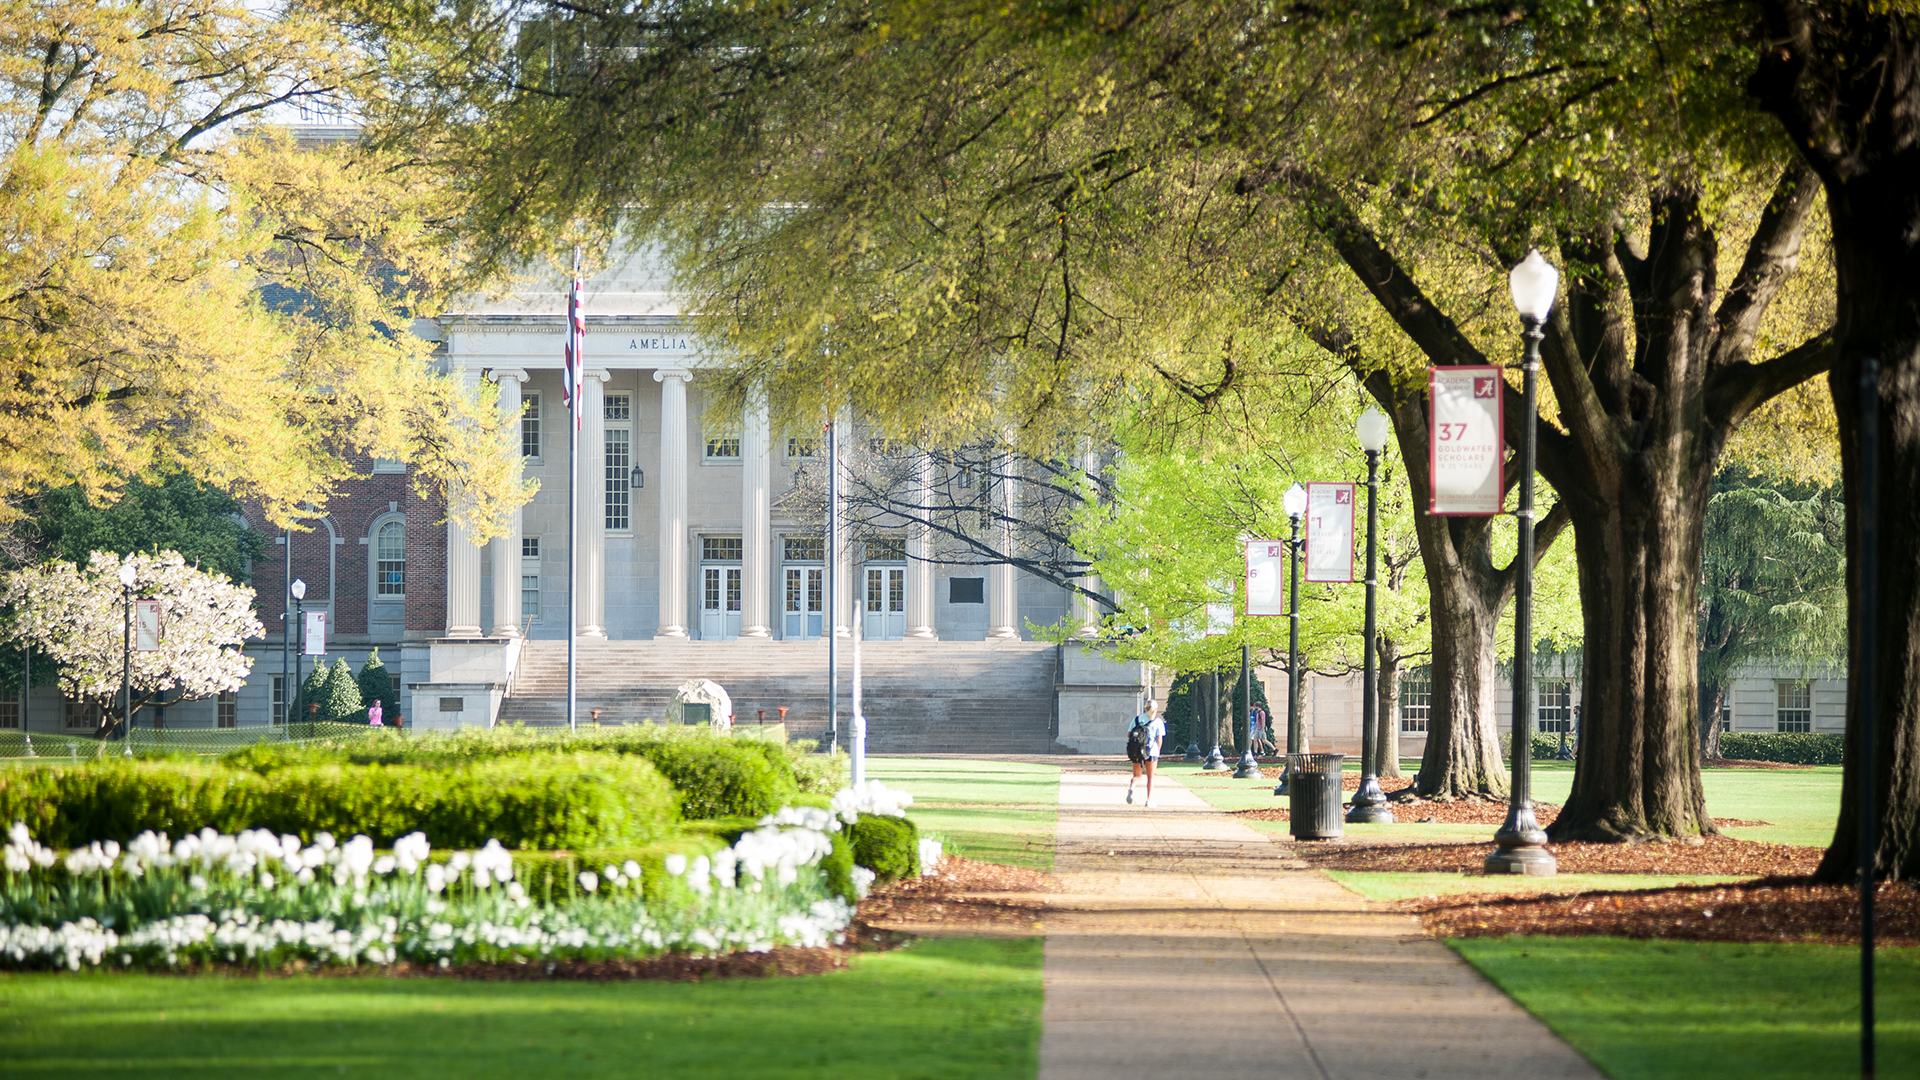 Campus Images University of Alabama